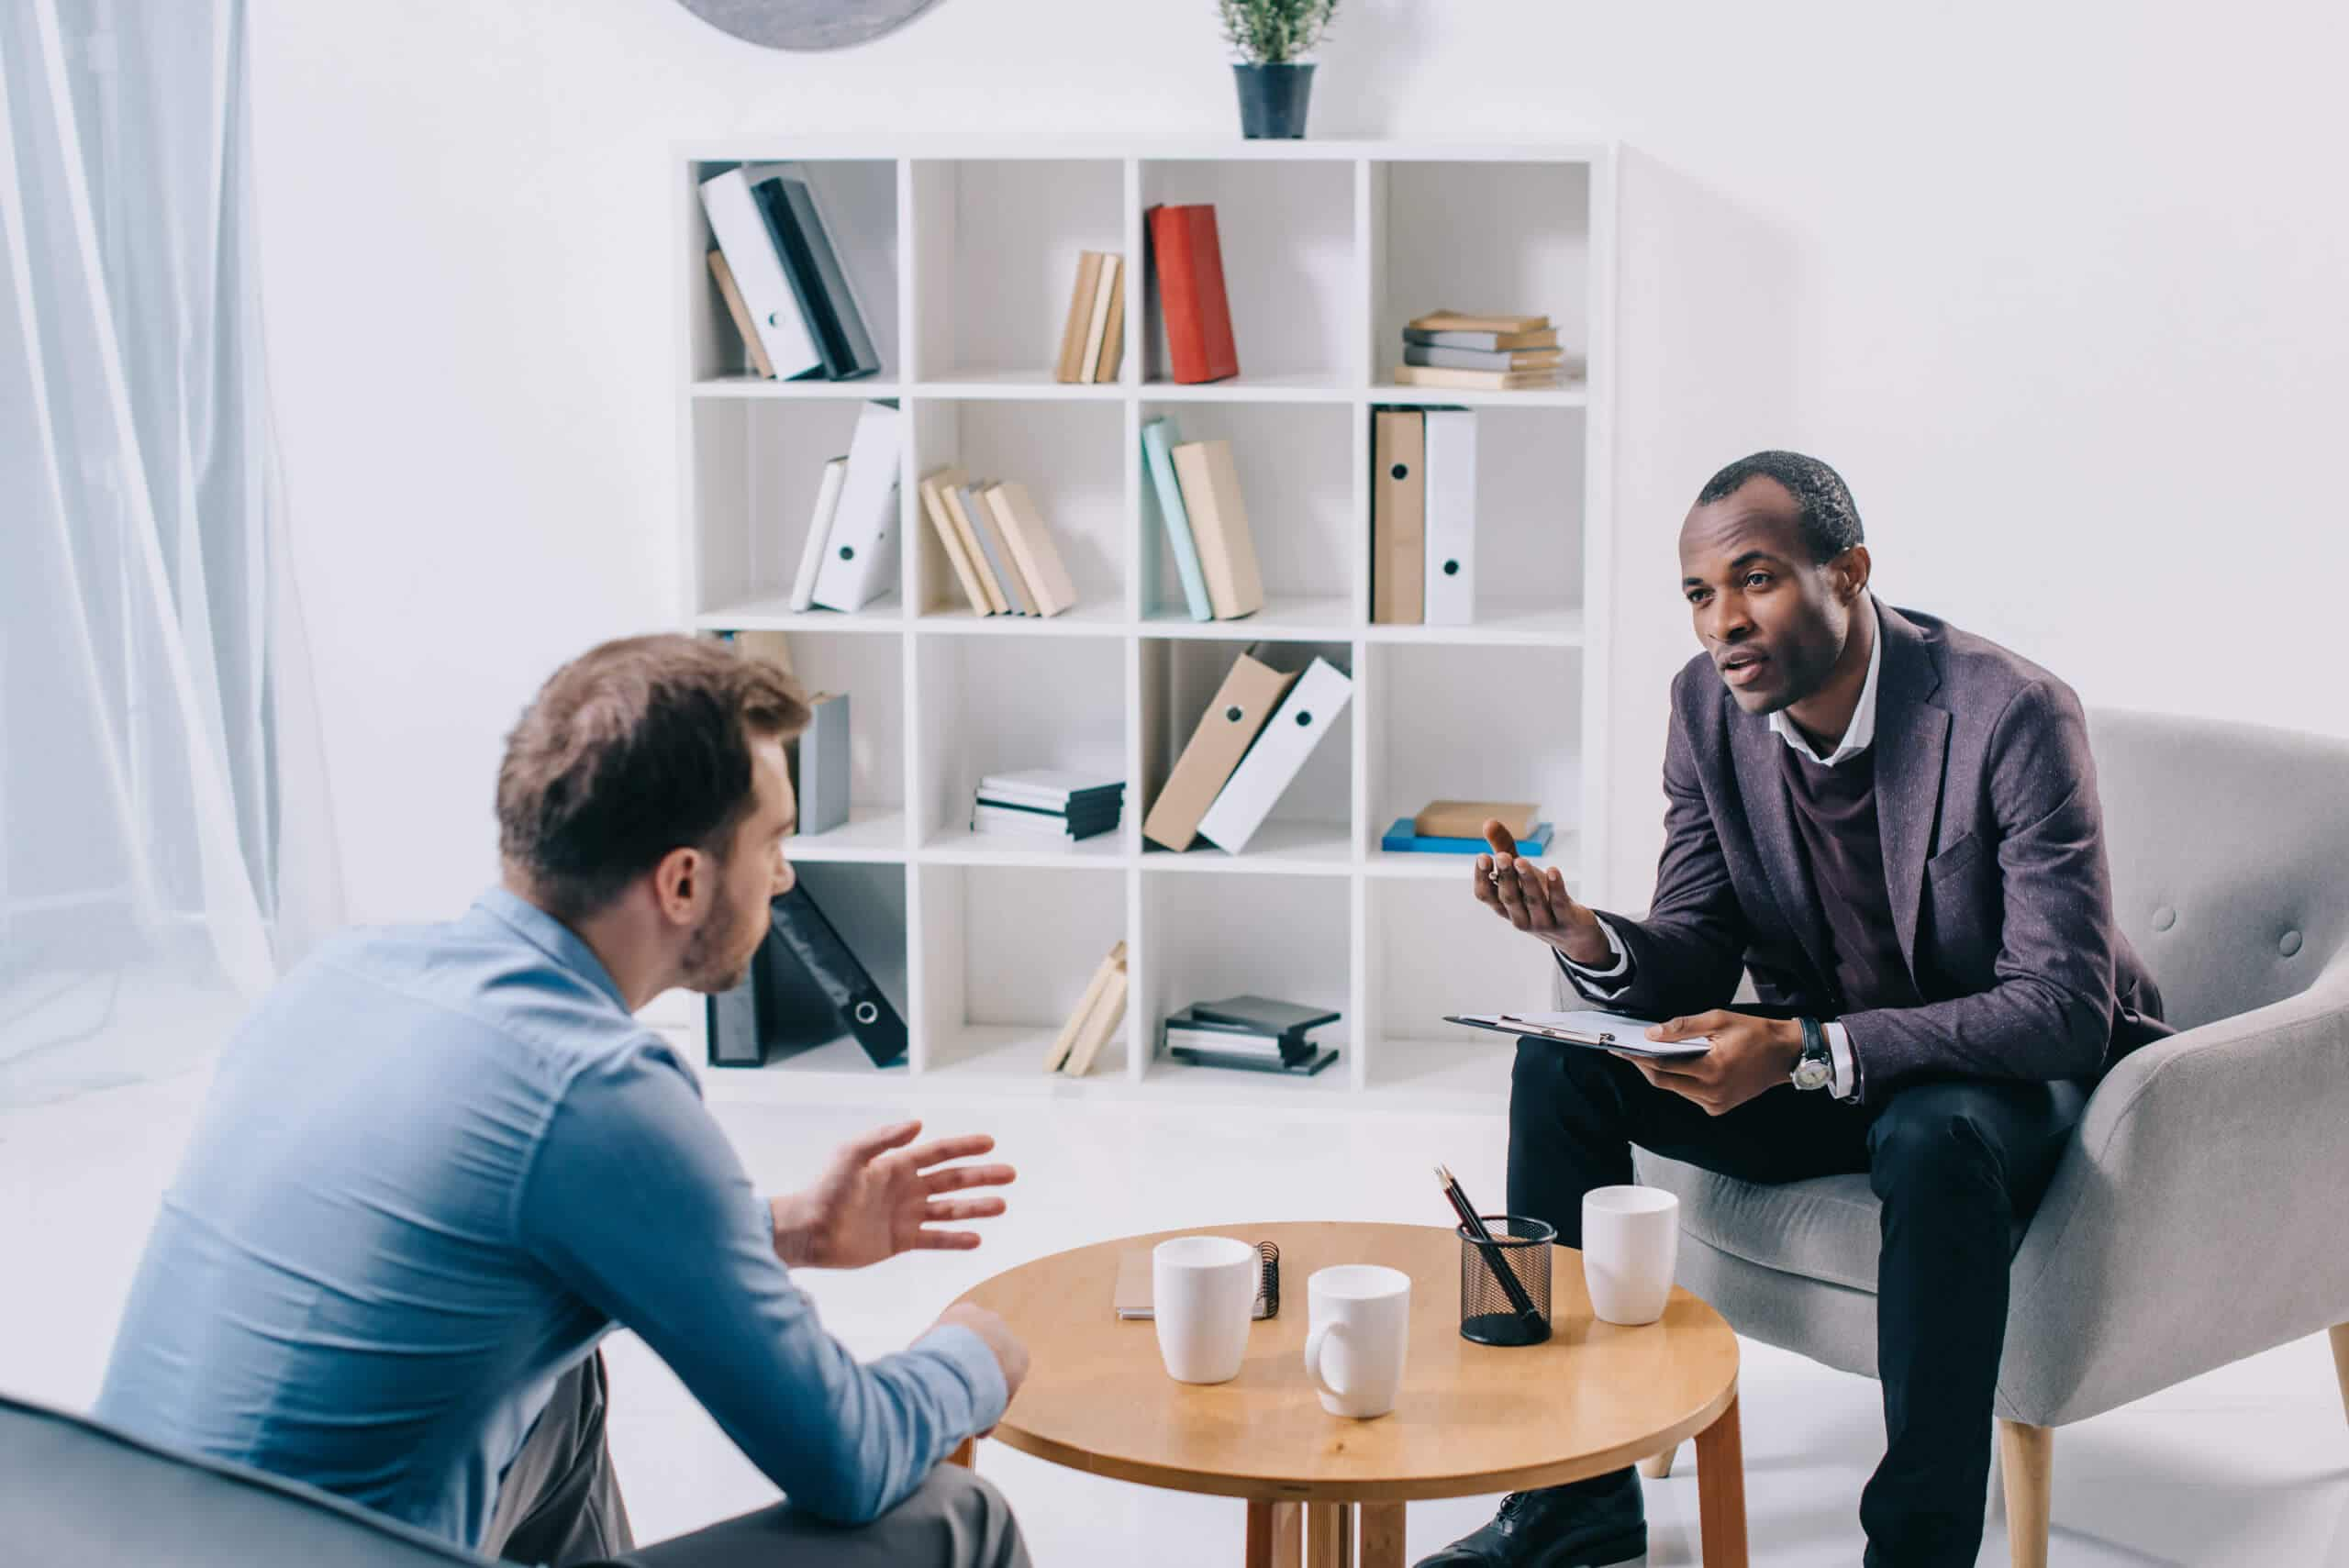 African american psychiatrist talking to young male client